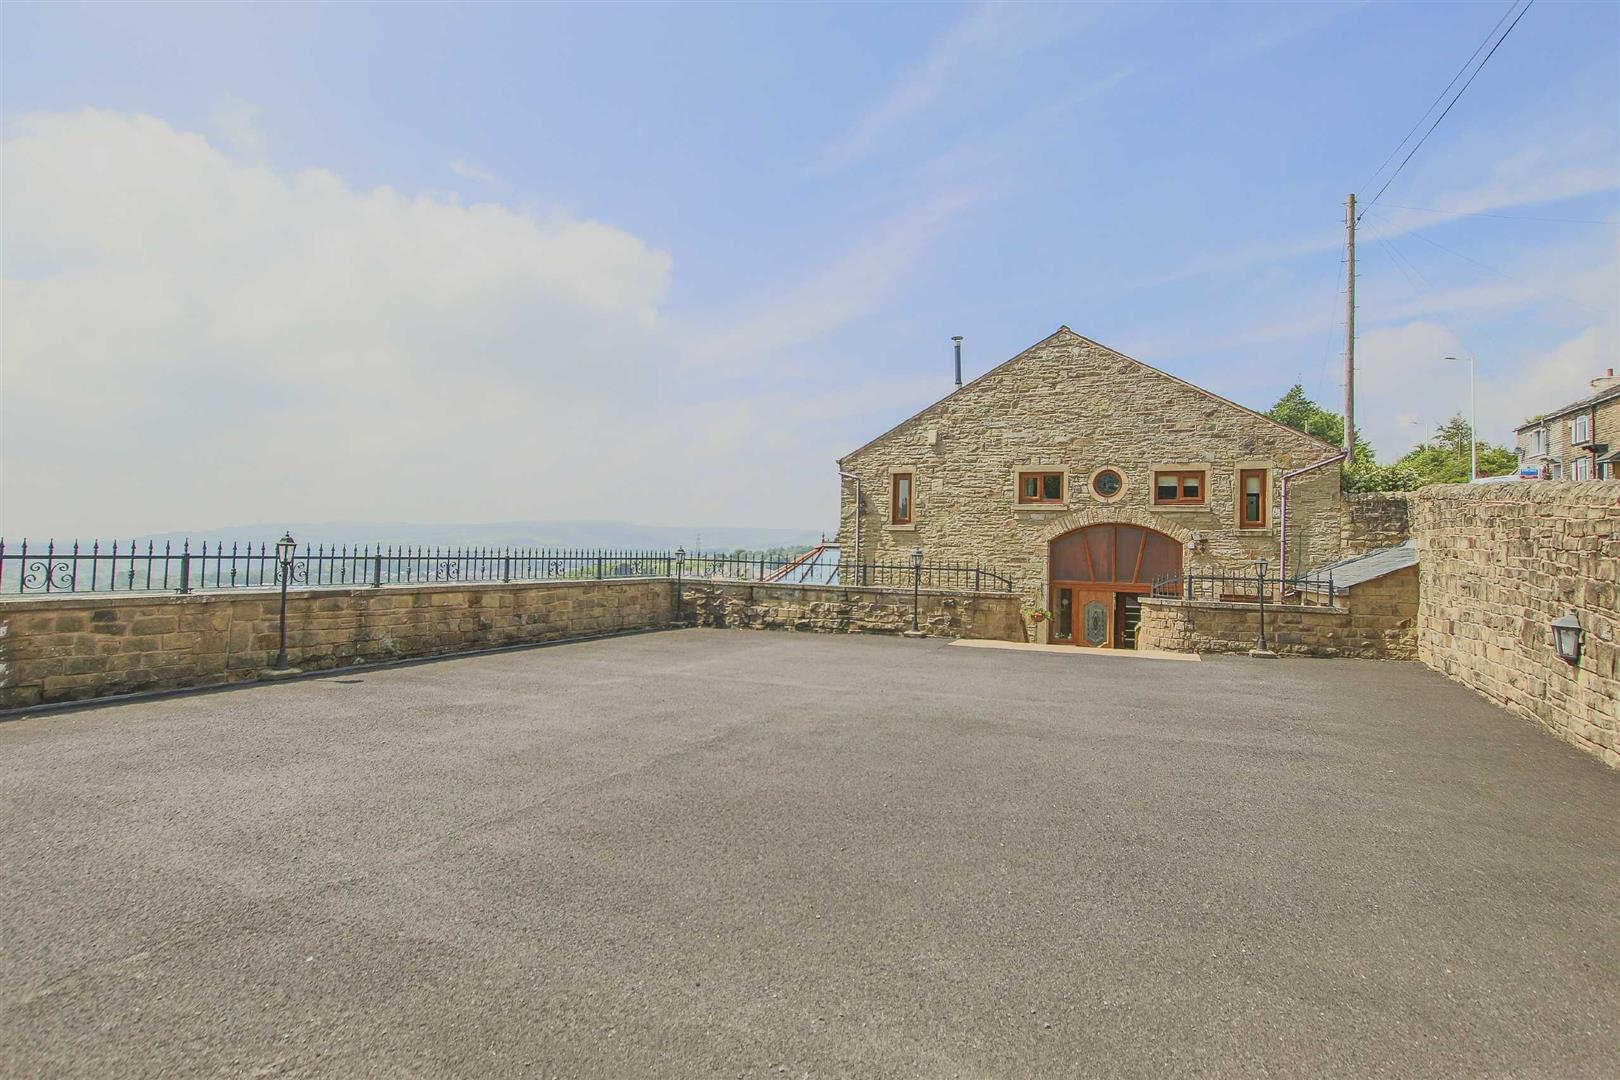 4 Bedroom Barn Conversion For Sale - p033135_45.jpg